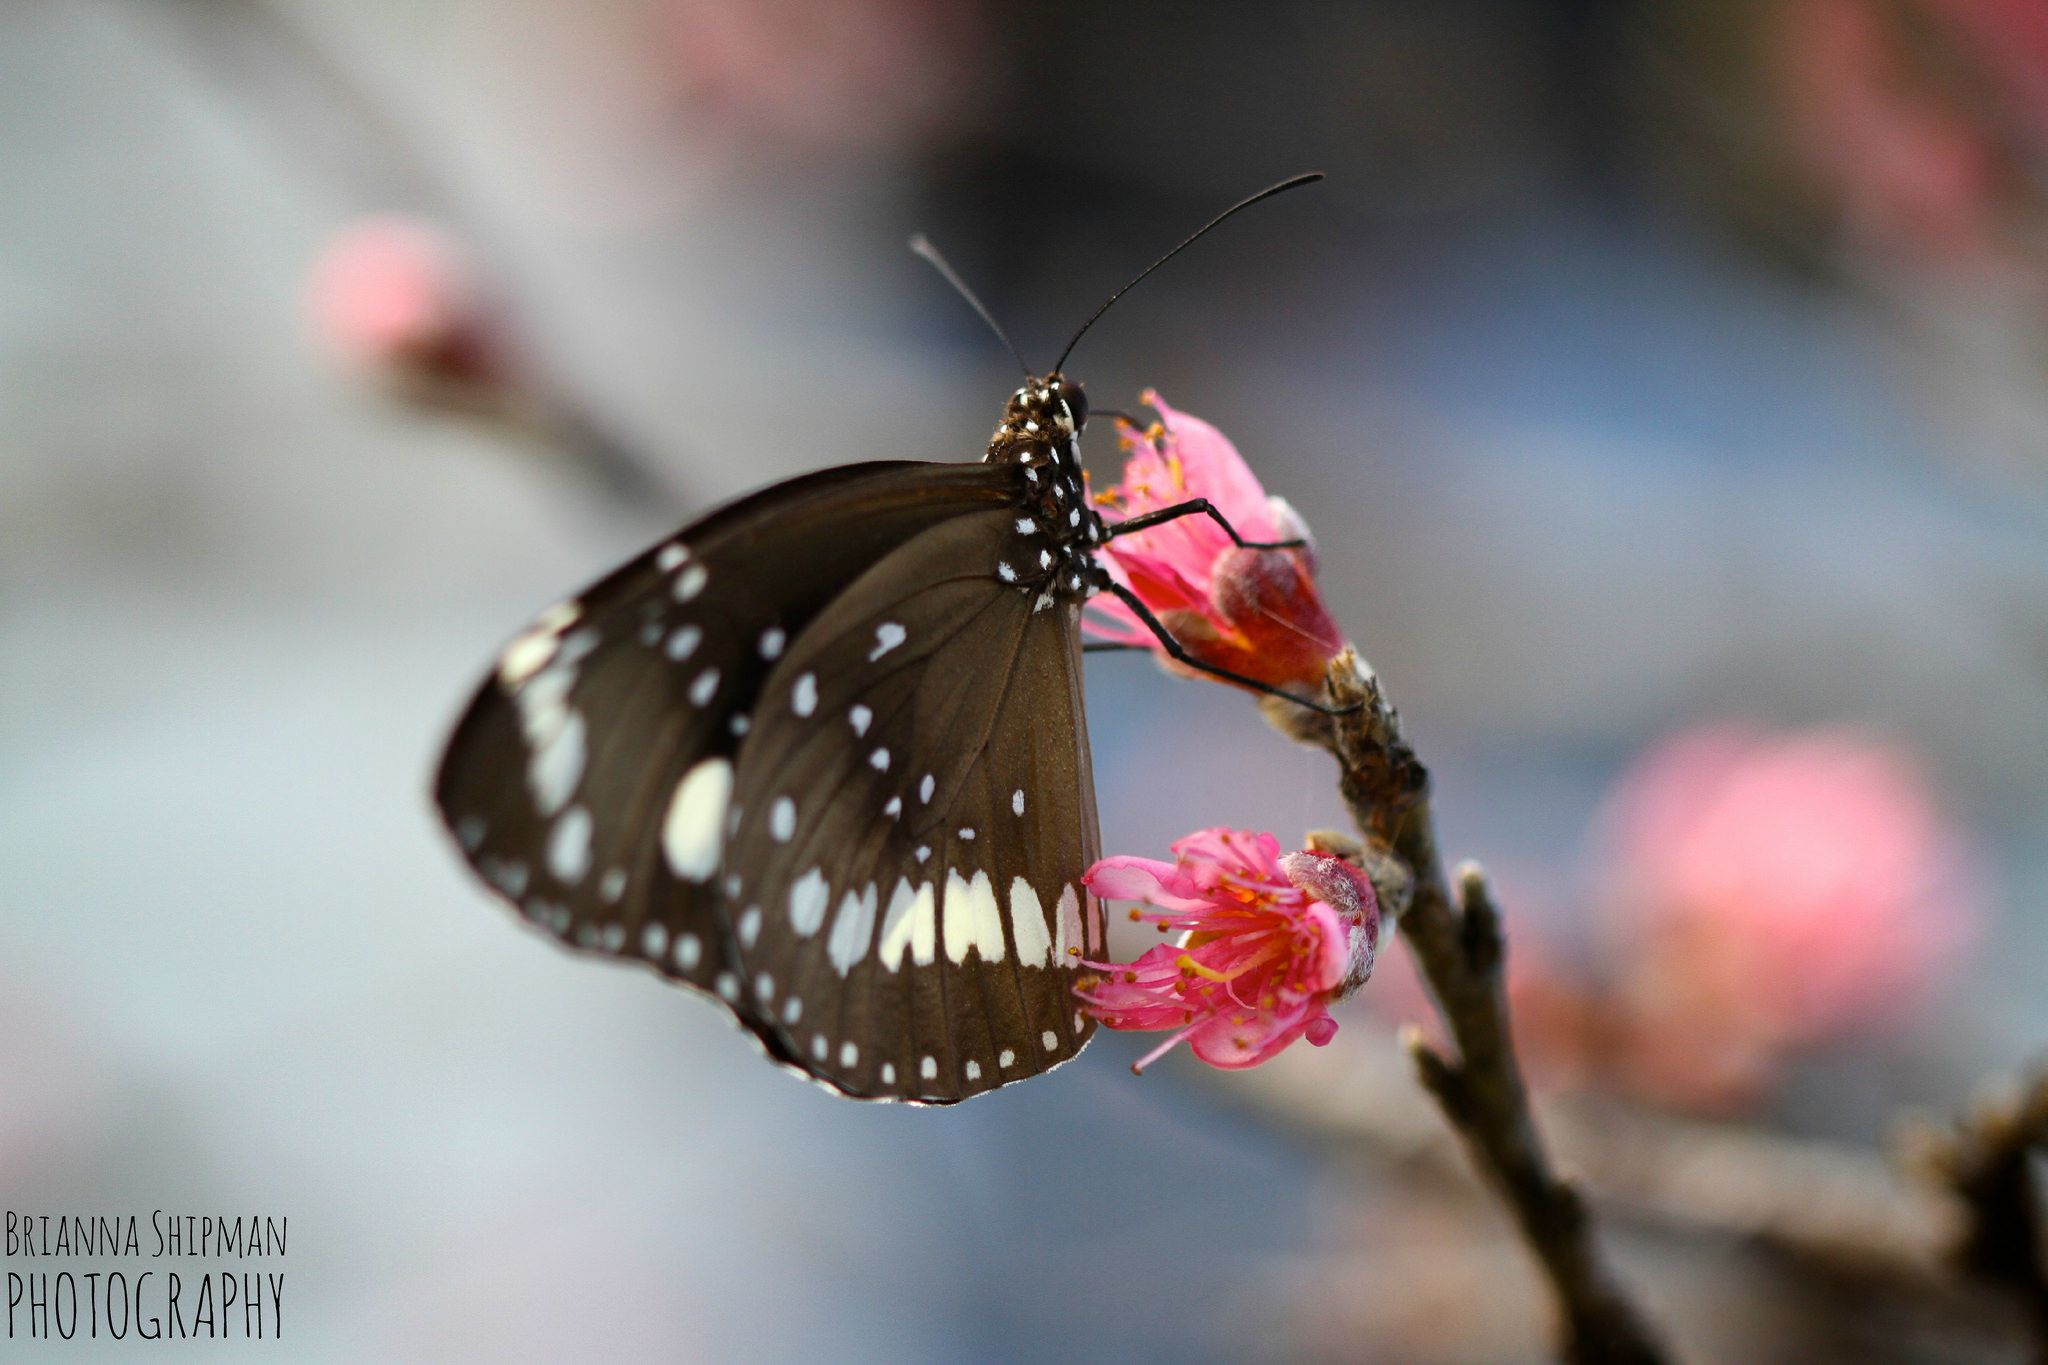 https://flic.kr/p/wDpcgz   Flutterby   The peach blossoms bring butterflies and bees, and they fly around busily in the sunshine.  When my grandma died, we released butterflies at her funeral. The next day, a big black and white butterfly fluttered by our house and sat in the tree out the front. My mum maintains that it's my grandmother who's come back as a butterfly.